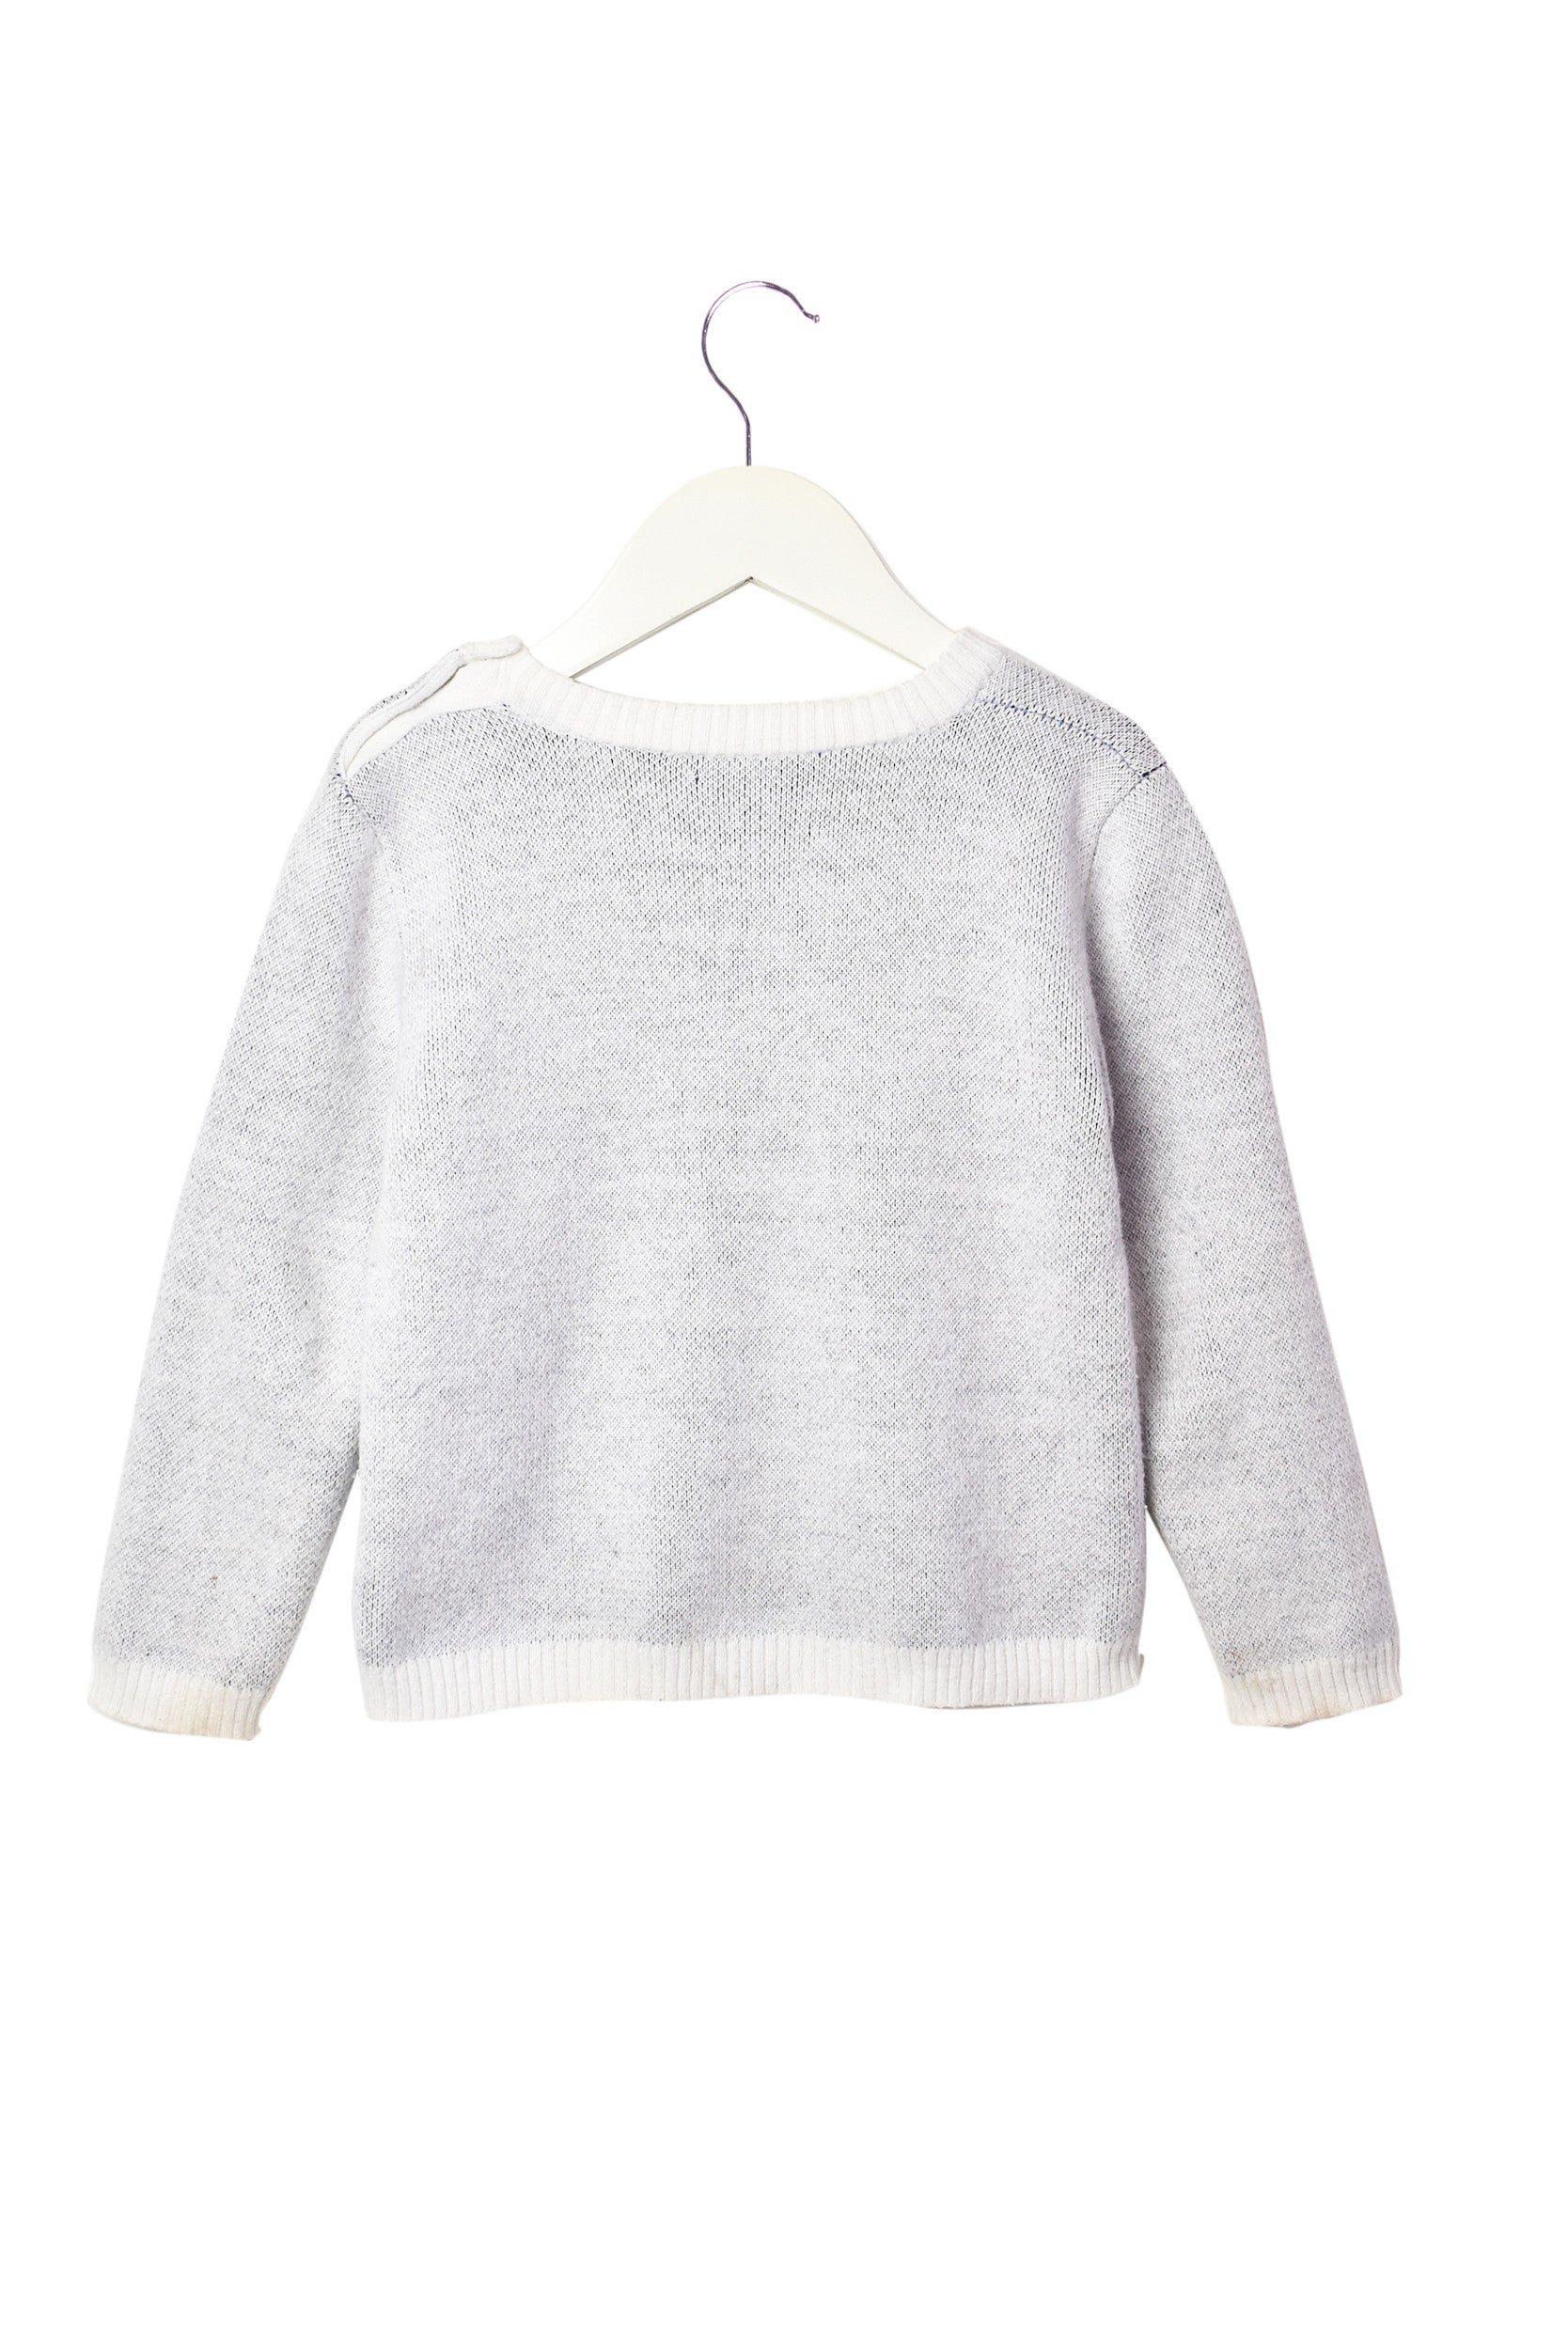 10005035 Atelier Child Kids~Sweater 4-5T, Atelier Child Retykle | Online Baby & Kids Clothing Hong Kong